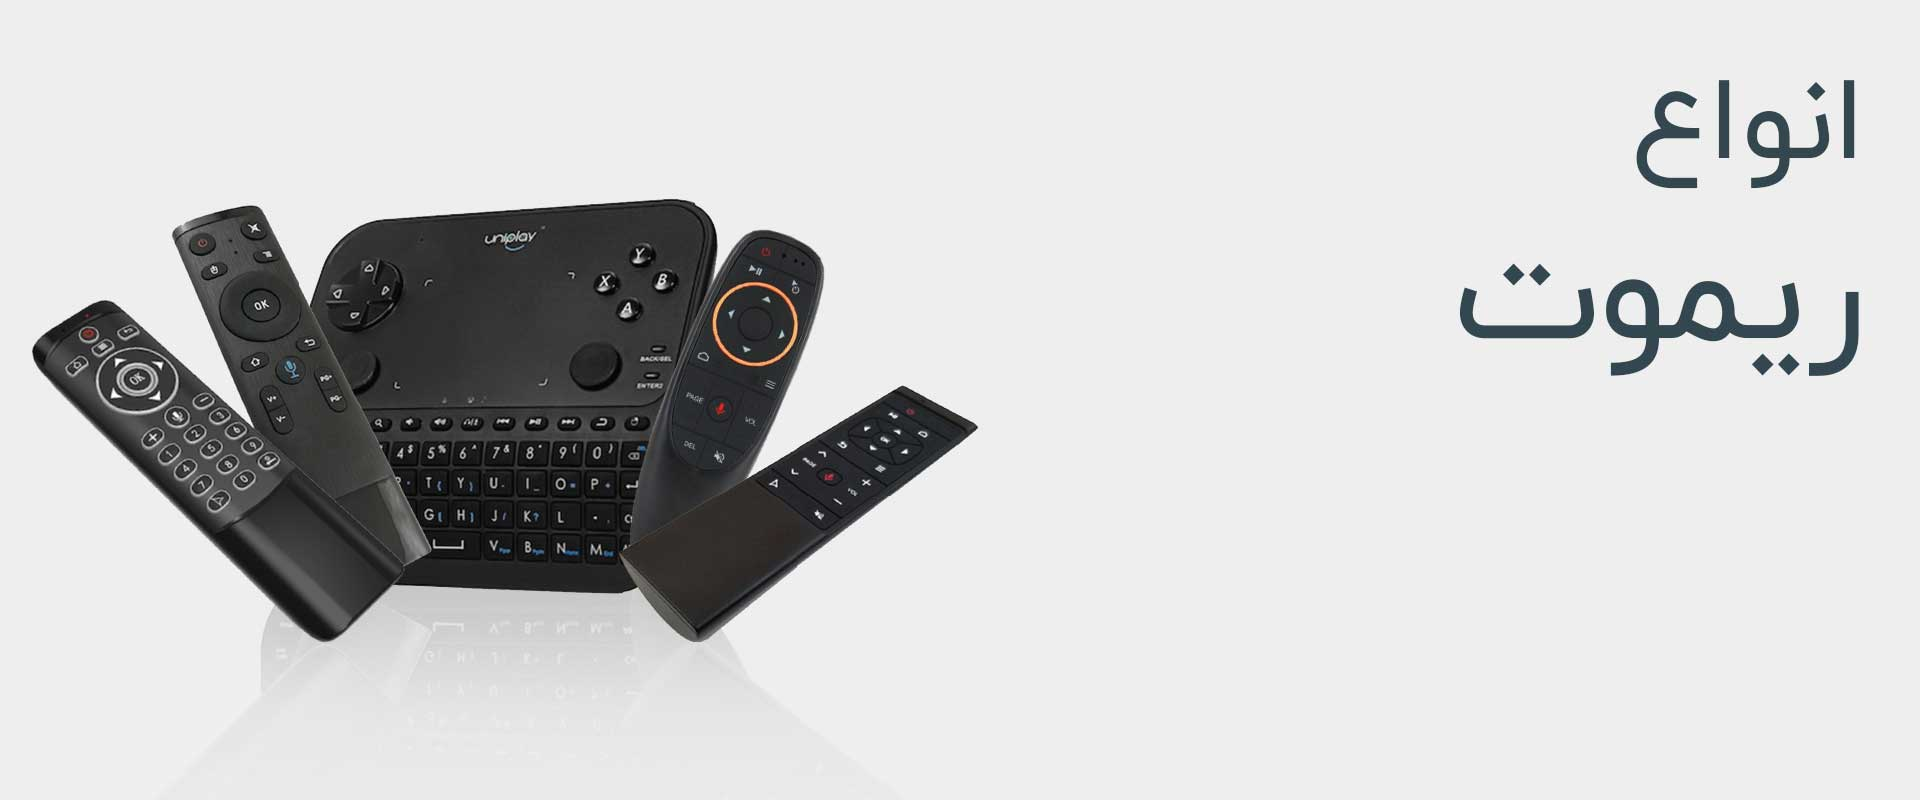 Android Box Dot Ir Banners Remotes 9911 Light